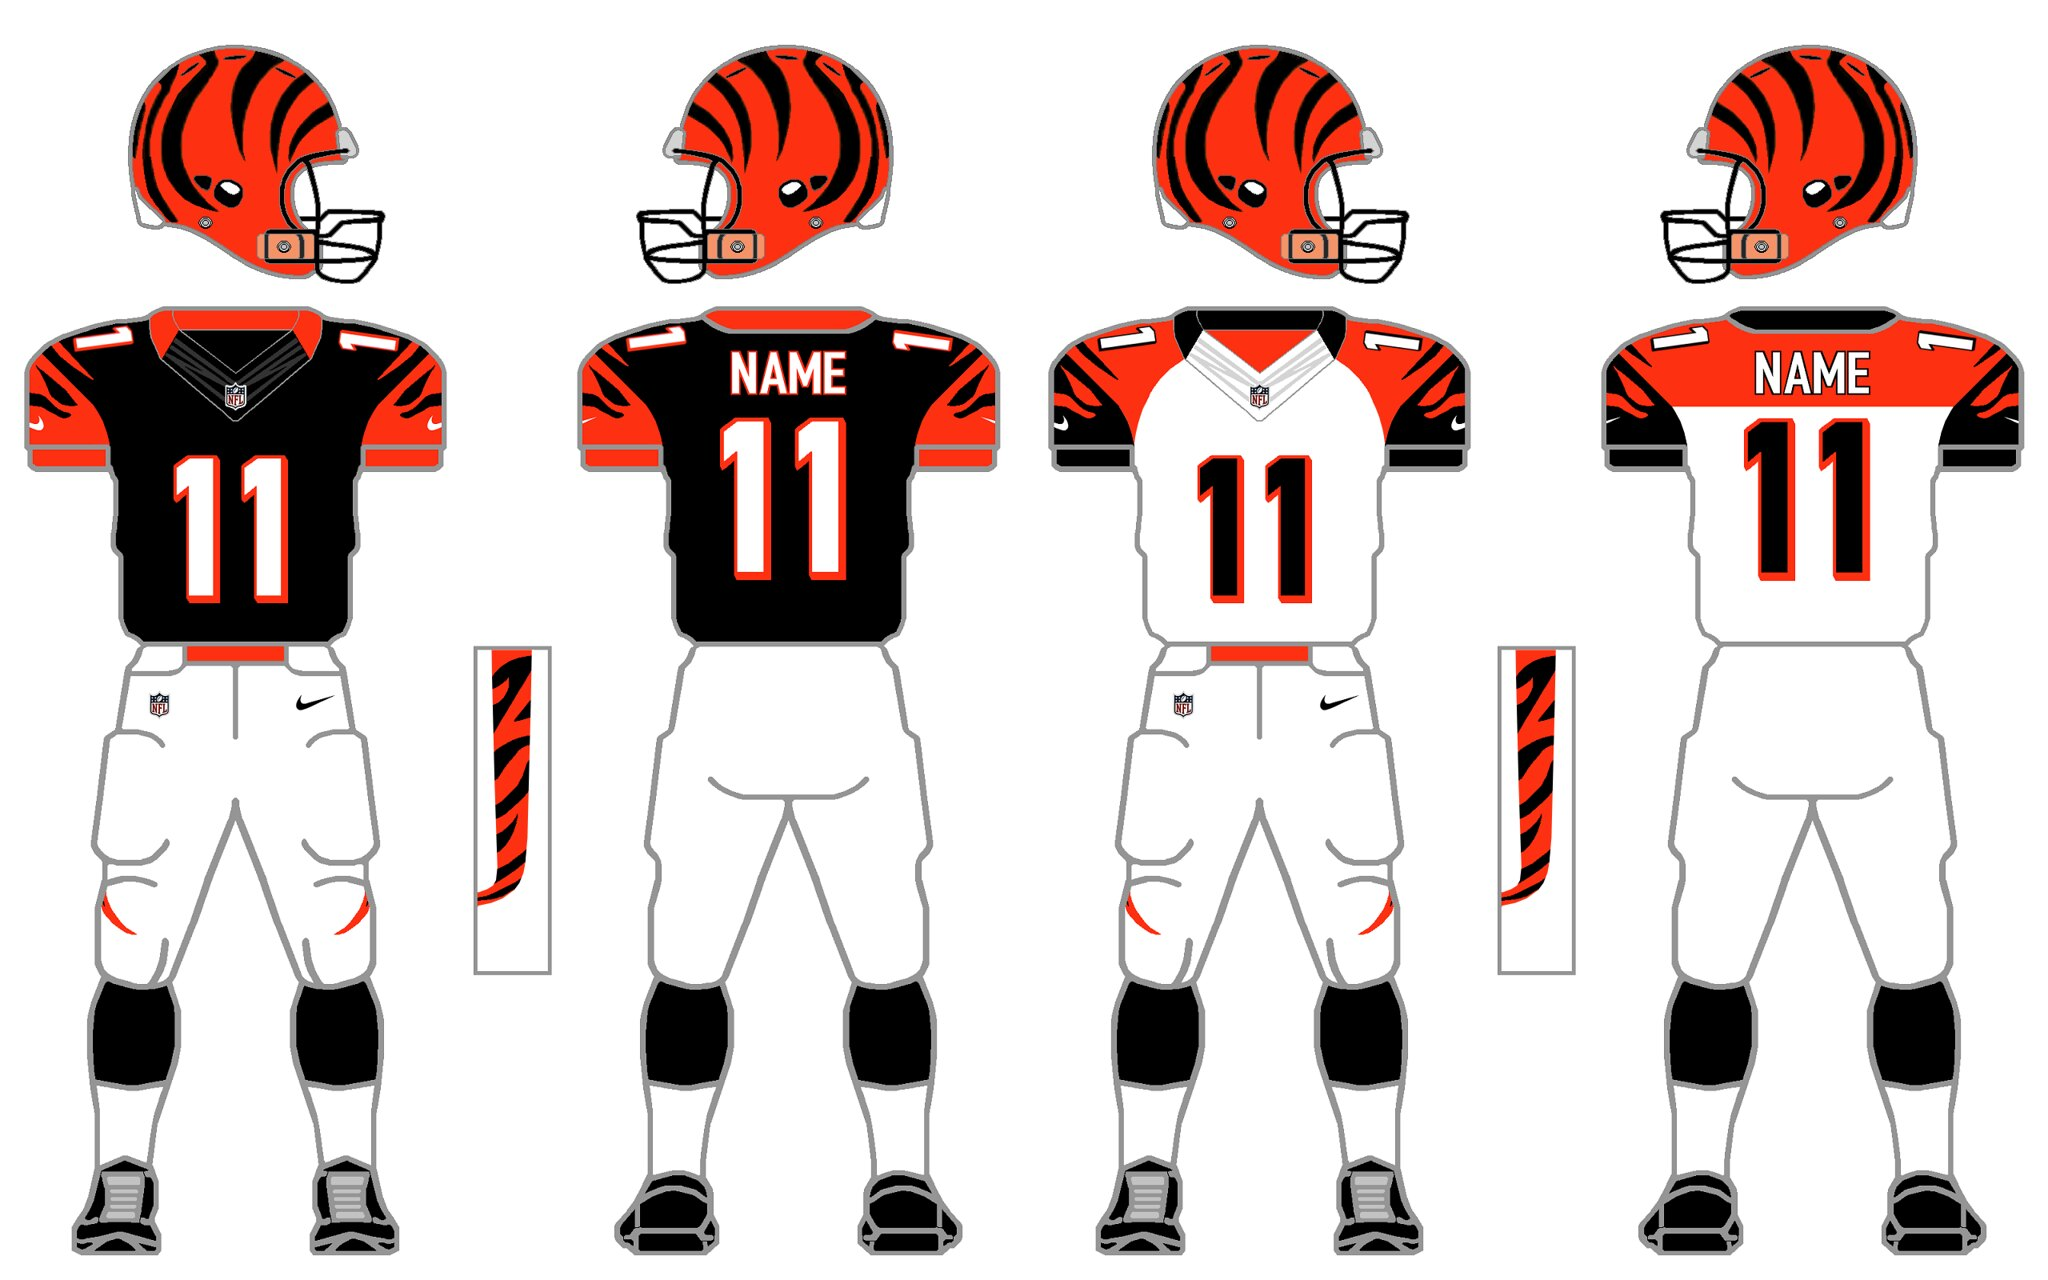 Uni Watch Kaos Merchandise Nba Gildan Dallas Mavericks Cincinnati Bengals The Move To Nike Proved Be A Huge Upgrade For As There Is No More Of Inconsistent Treatments Sleeves